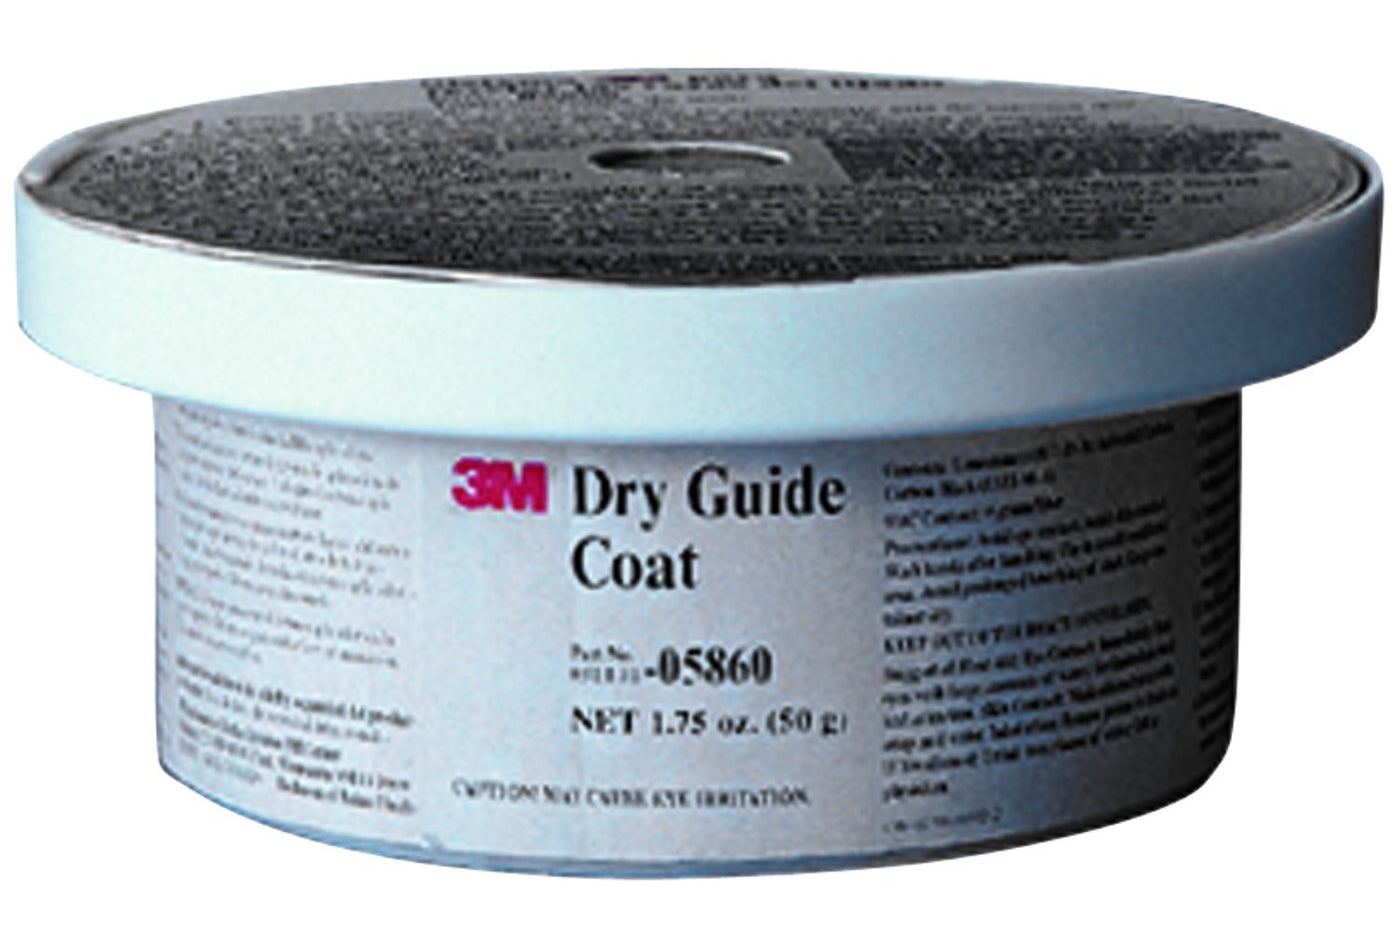 3m dry guide coat cartridge black hardy packaging rh hardypackaging co nz dry guide coat 450ml aerosol sds dry guide coat powder